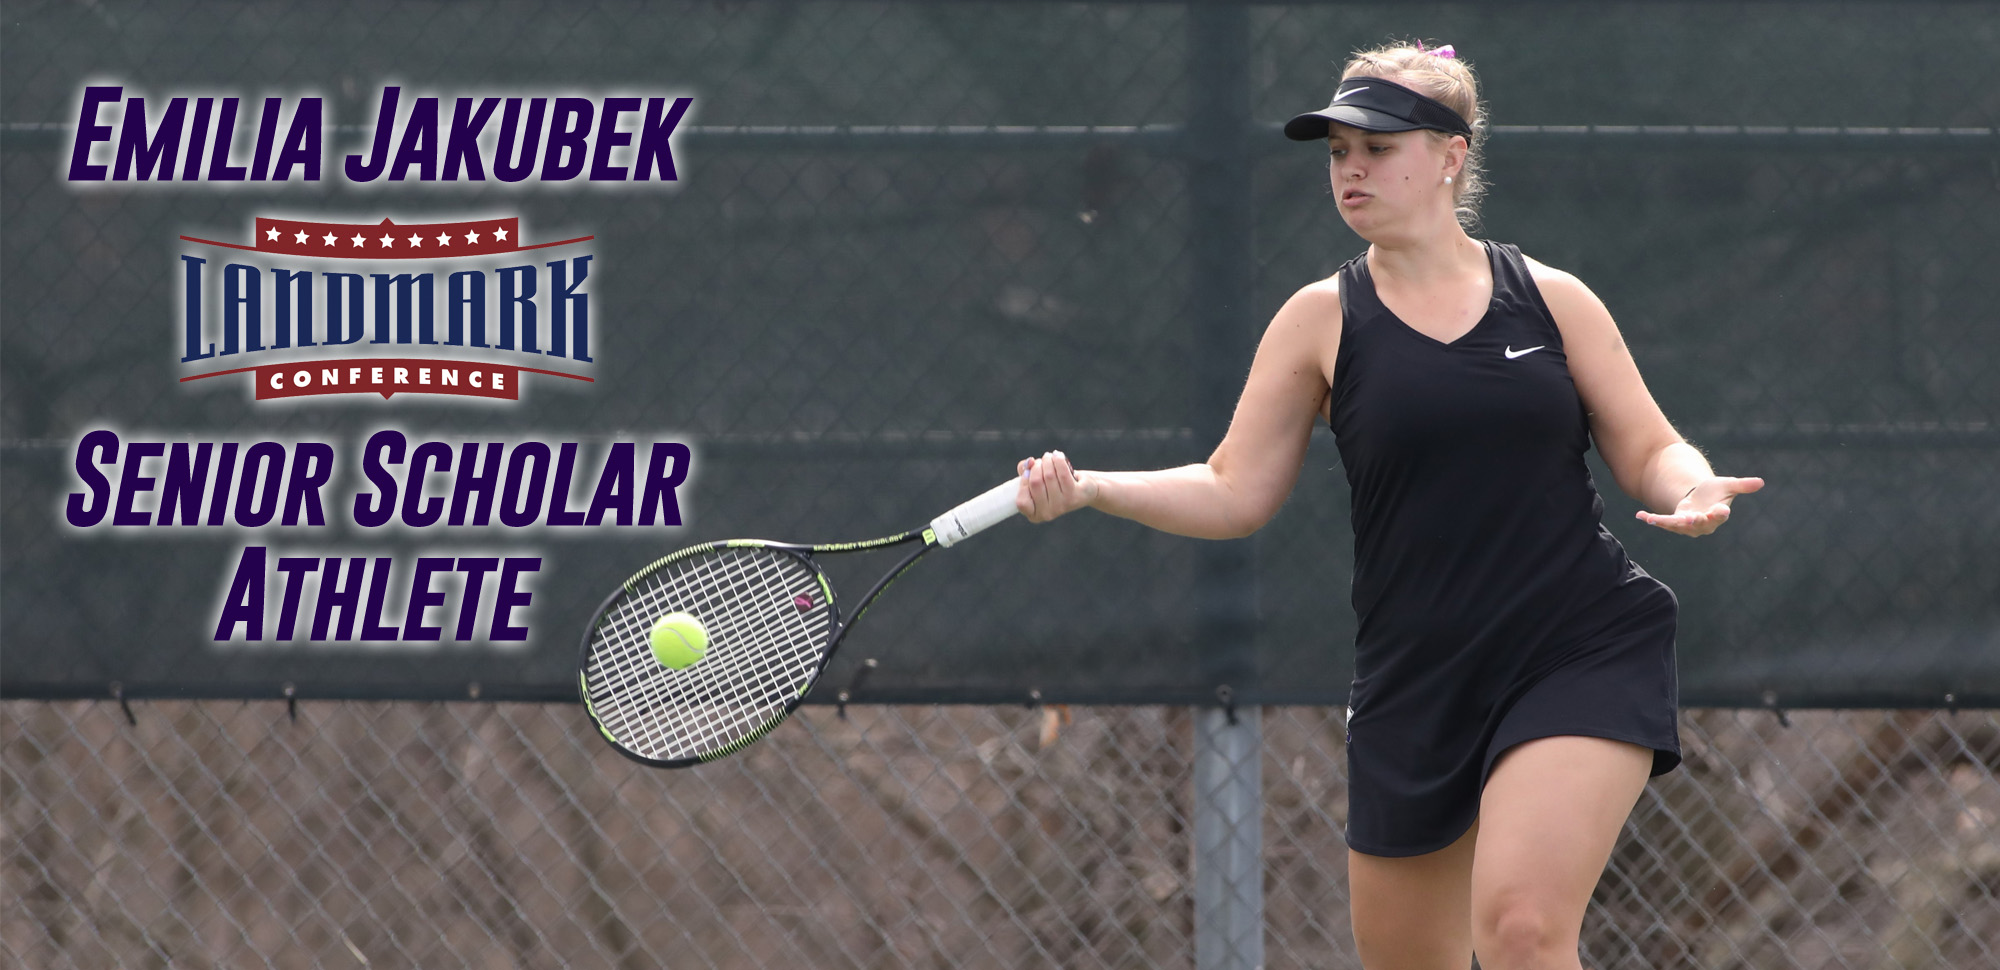 Senior Emilia Jakubek was honored as the Landmark Conference Senior Scholar Athlete for women's tennis on Thursday. © Photo by Timothy R. Dougherty / doubleeaglephotography.com